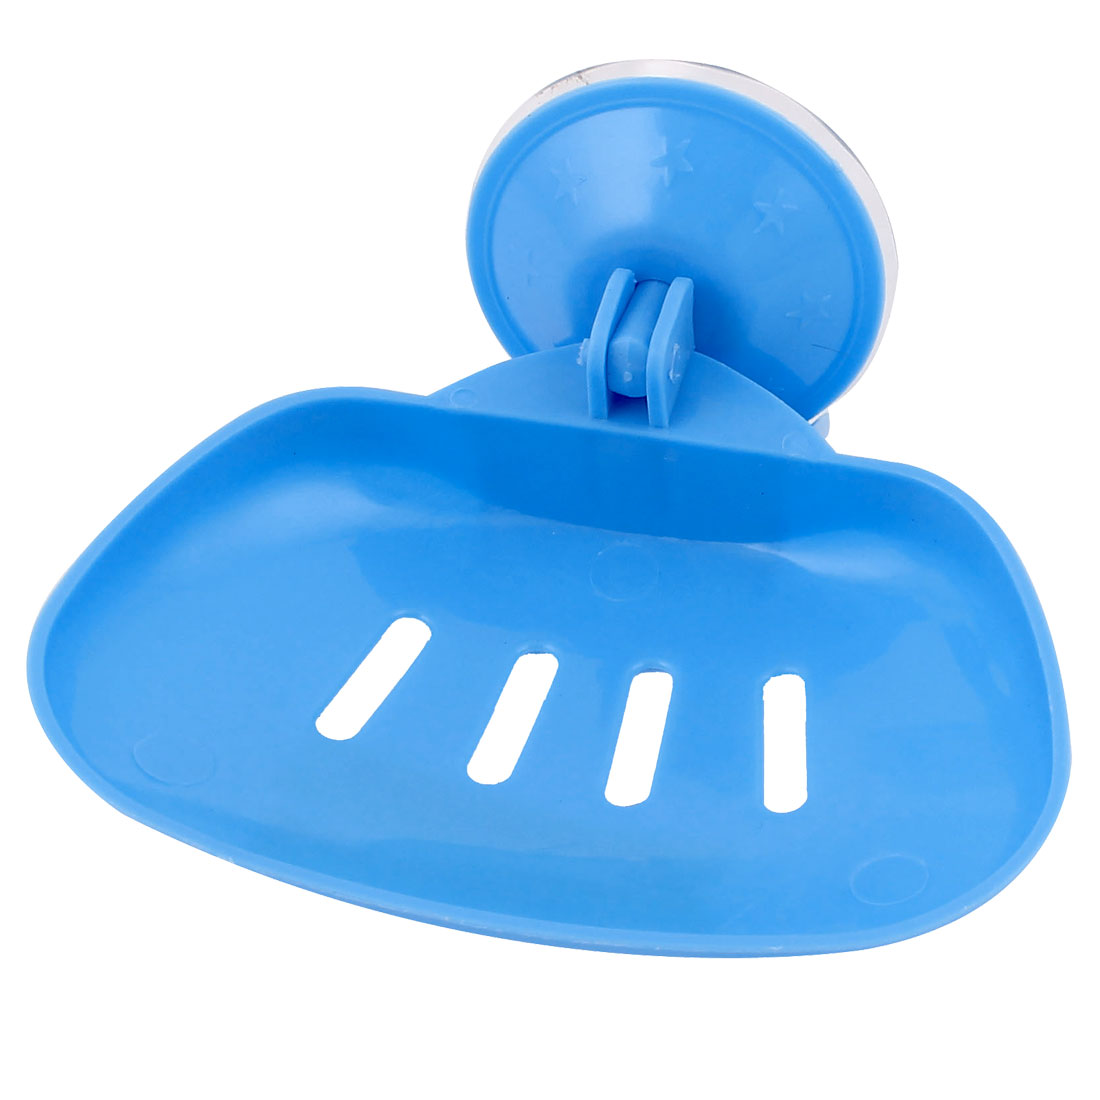 Household Bathroom Wall Hollow Out Plastic Suction Cup Soap Dish Holder Blue